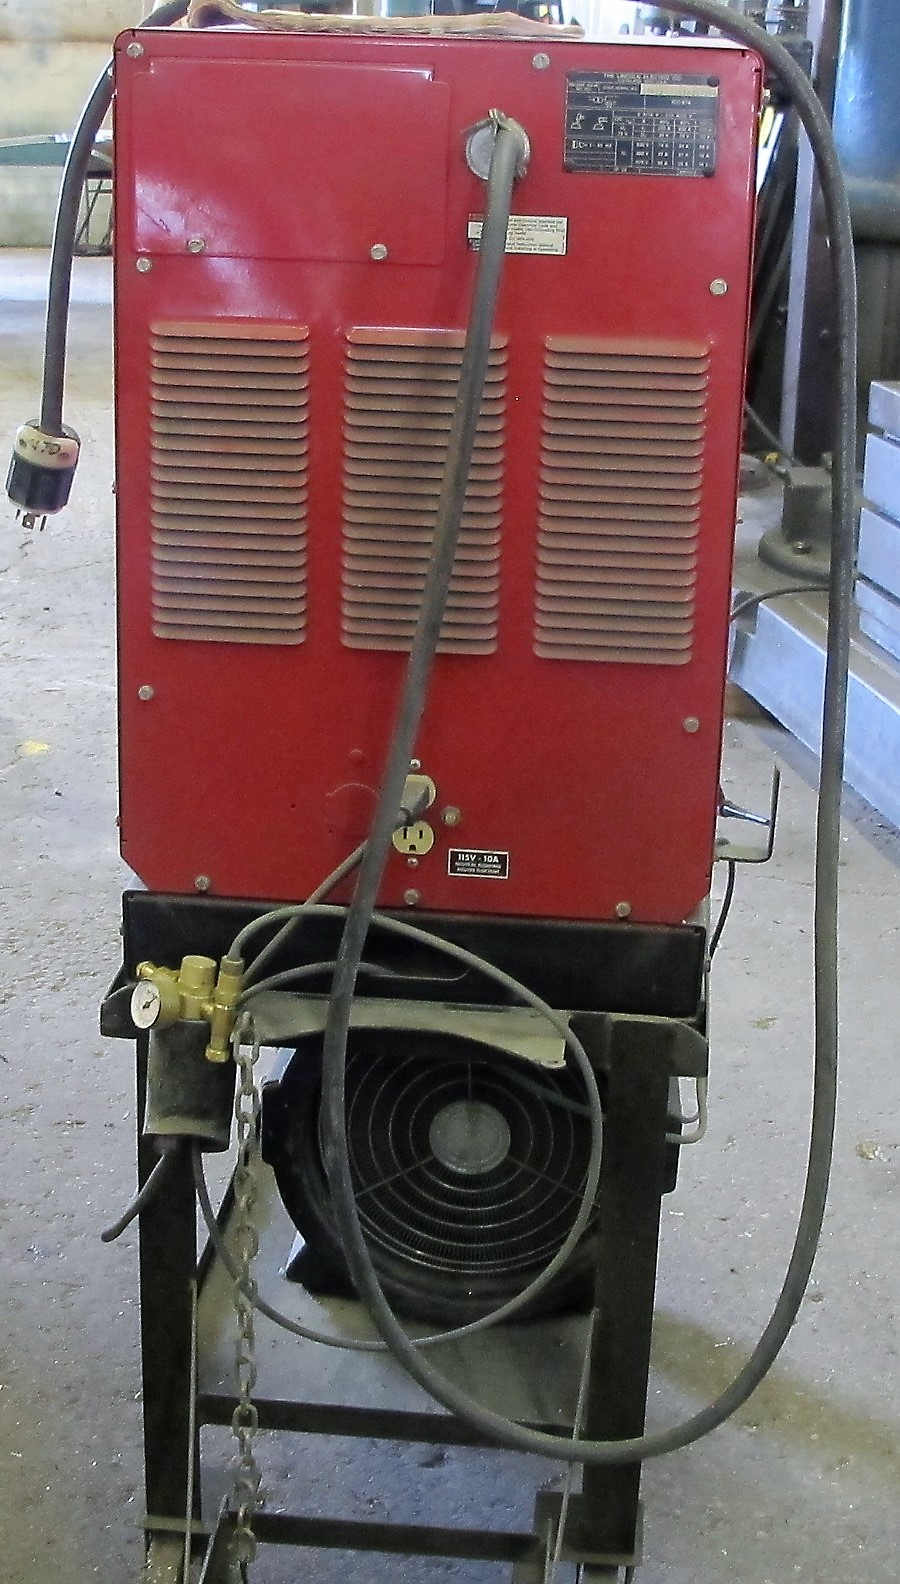 LINCOLN ELECTRIC SQUARE WAVE TIG 255 WELDER W/LA105939 COOLING SYSTEM, CART AND CABLES - Image 3 of 4